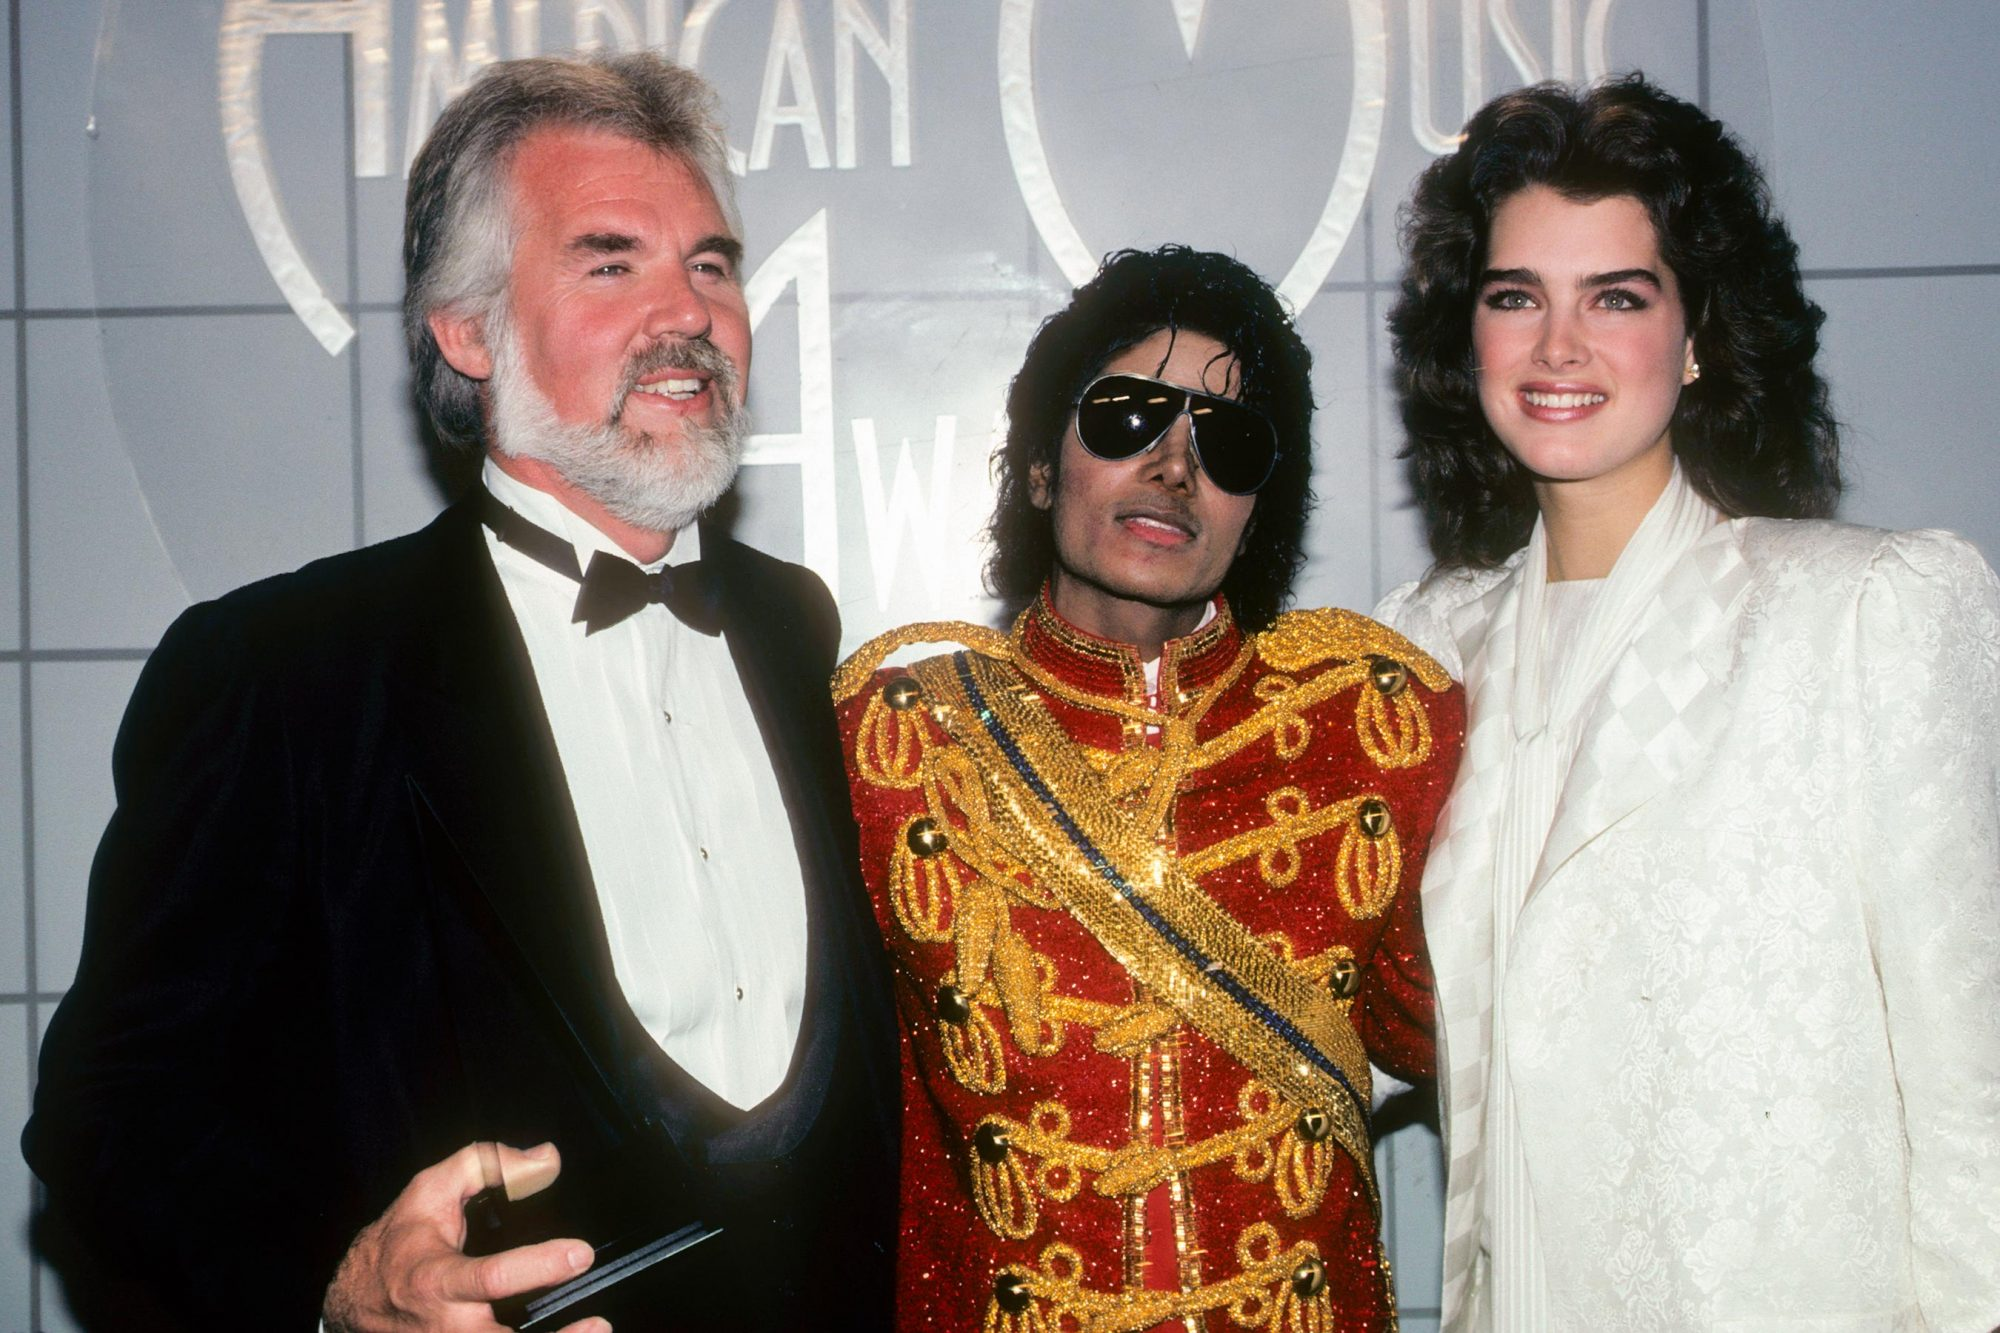 ABC's Coverage of the American Music Awards - Archive